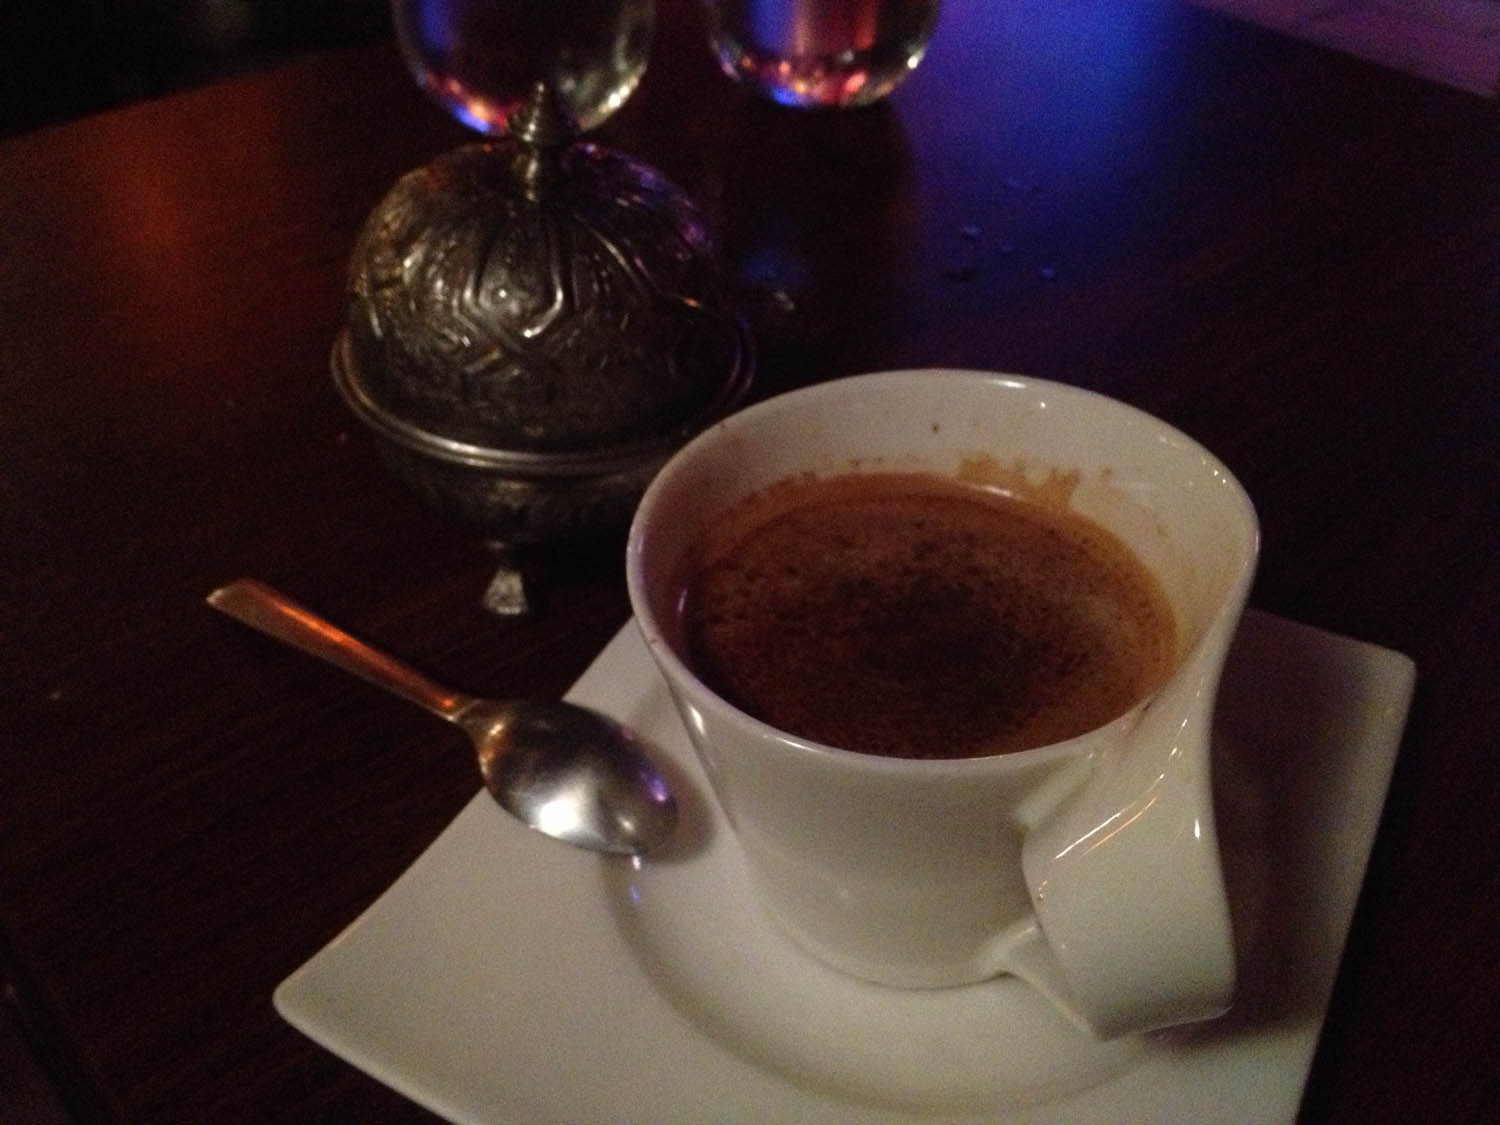 We finished with a thick, strong Moroccan coffee